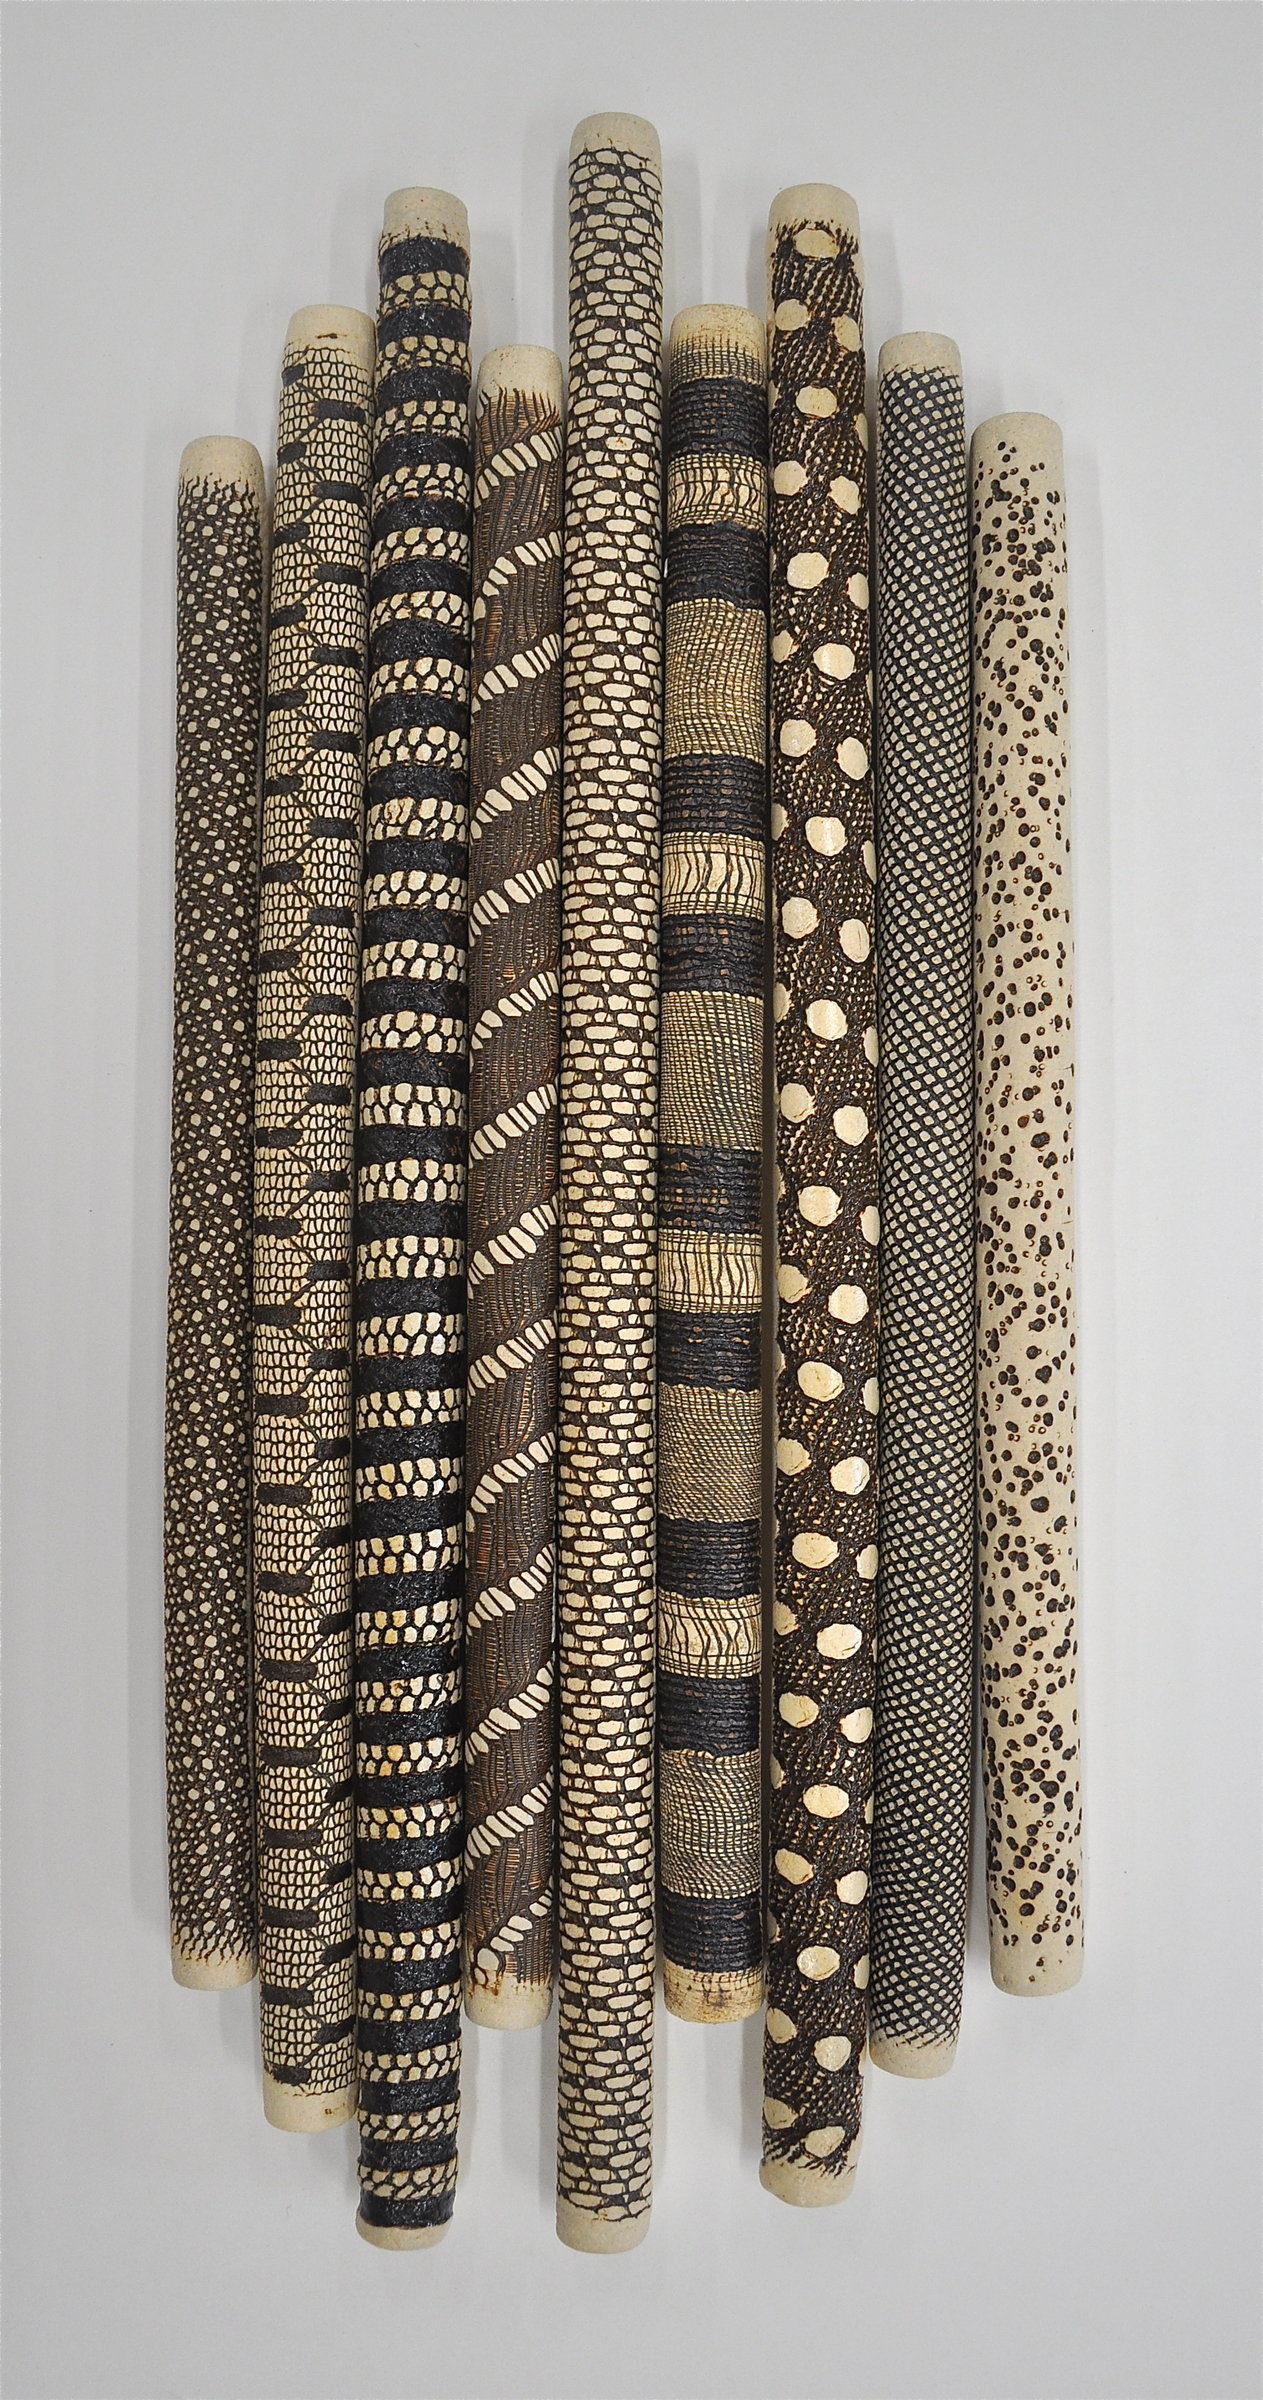 Attractive 9 Piece Installation By Kelly Jean Ohl (Ceramic Wall Sculpture) | Artful  Home